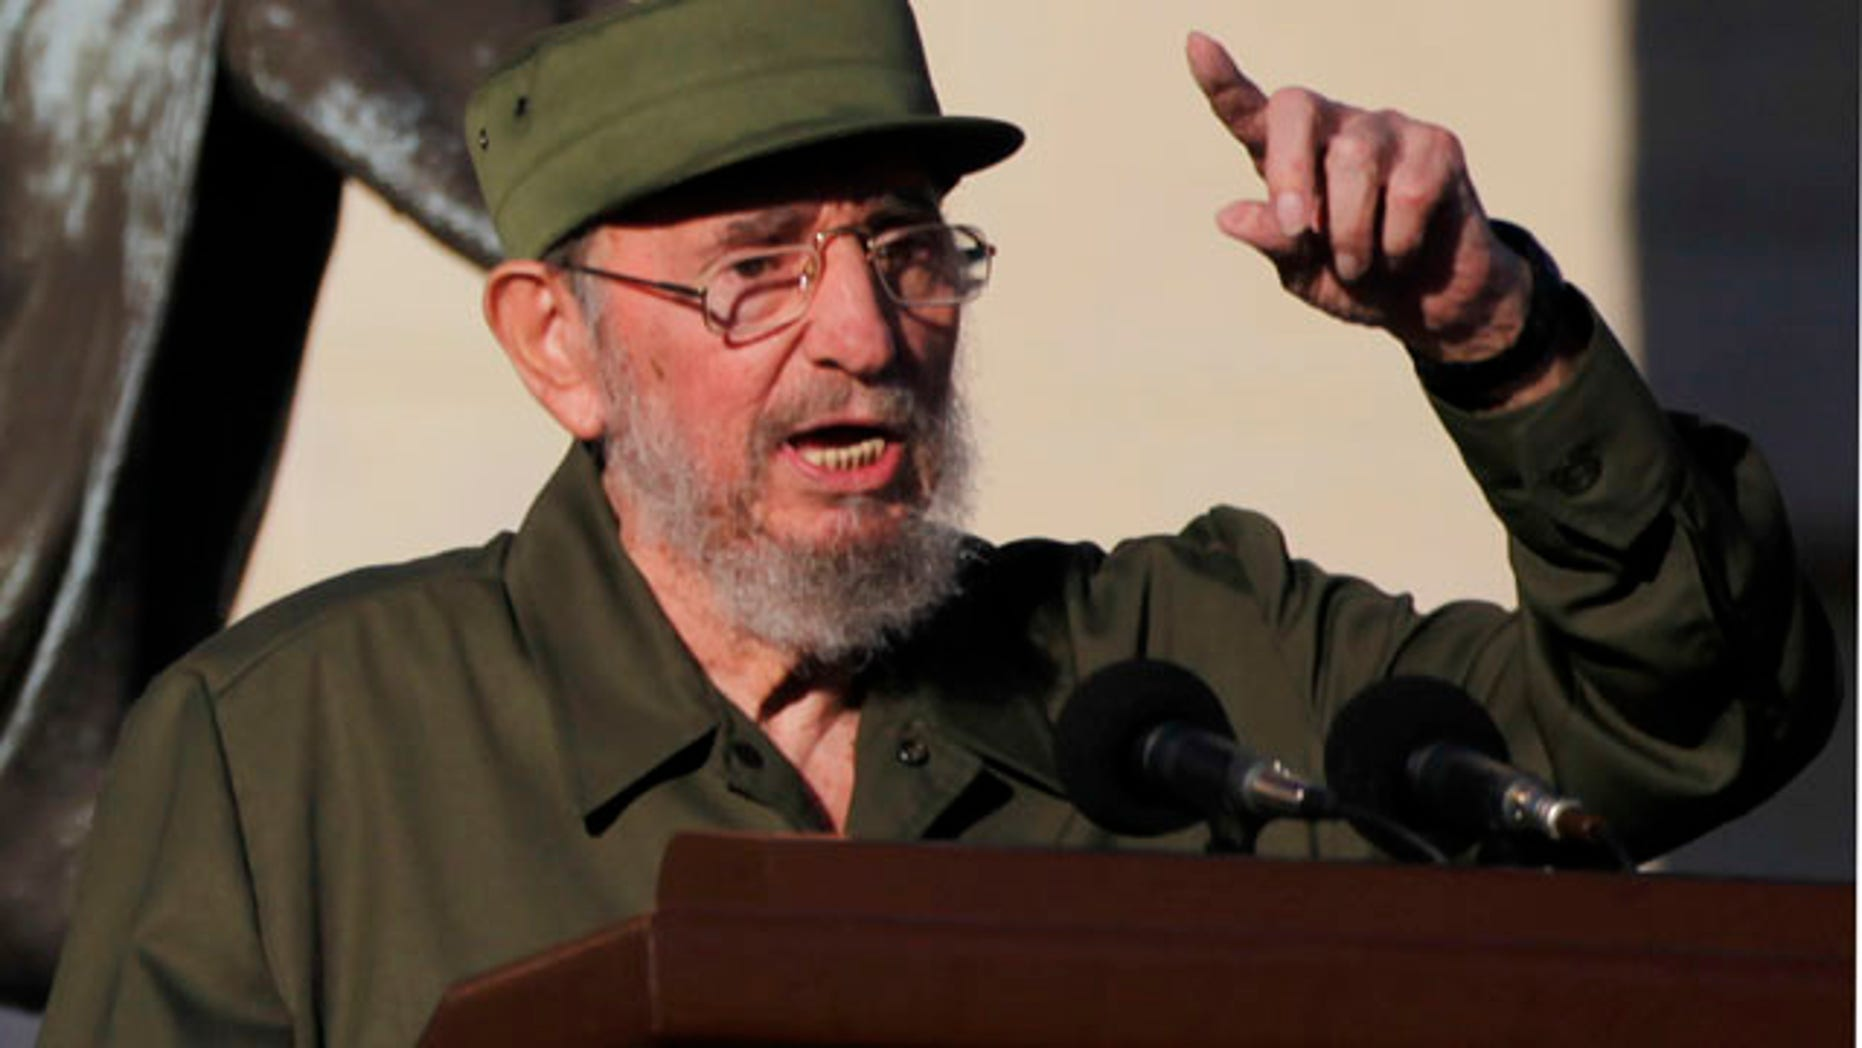 Sept. 3: Cuba's leader Fidel Castro delivers a speech to students outside Havana's University in Havana, Cuba. Castro dusted off his military fatigues for the first time since stepping down as president four years ago, a symbolic act in a Communist country where little signals often carry enormous significance. (AP)